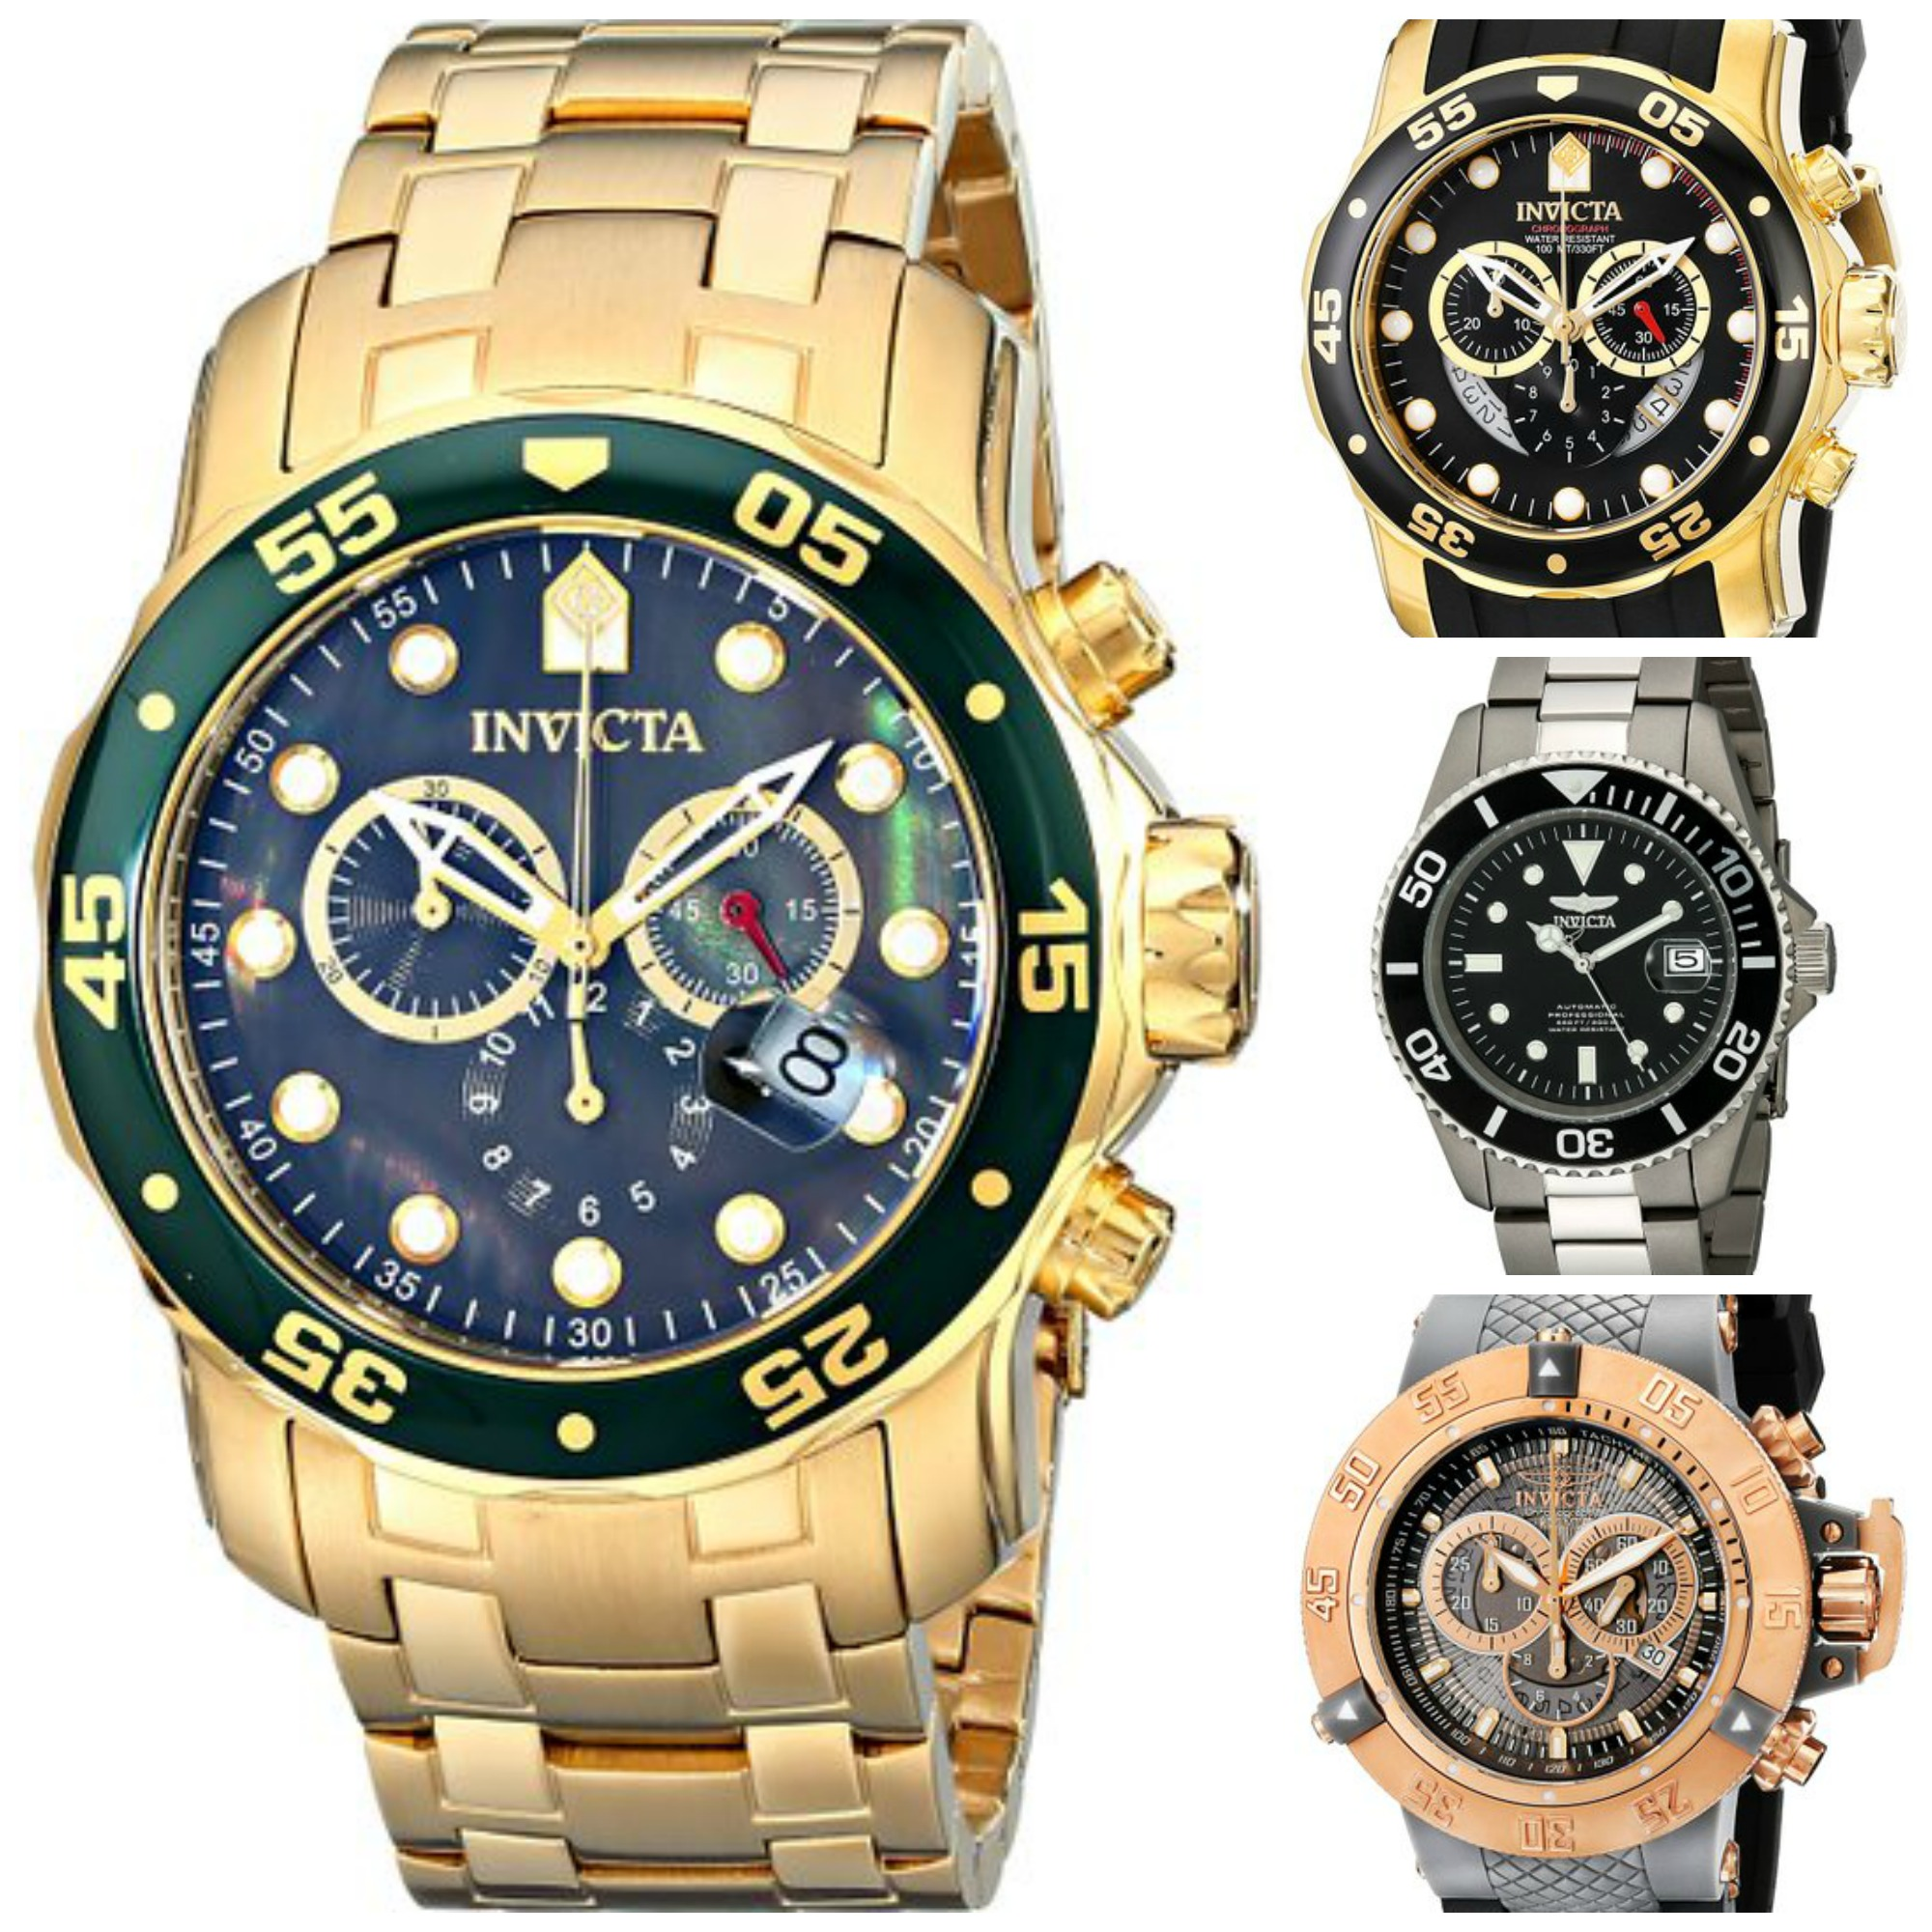 Top 5 Most Popular Invicta Watches Under £200 For Men ...